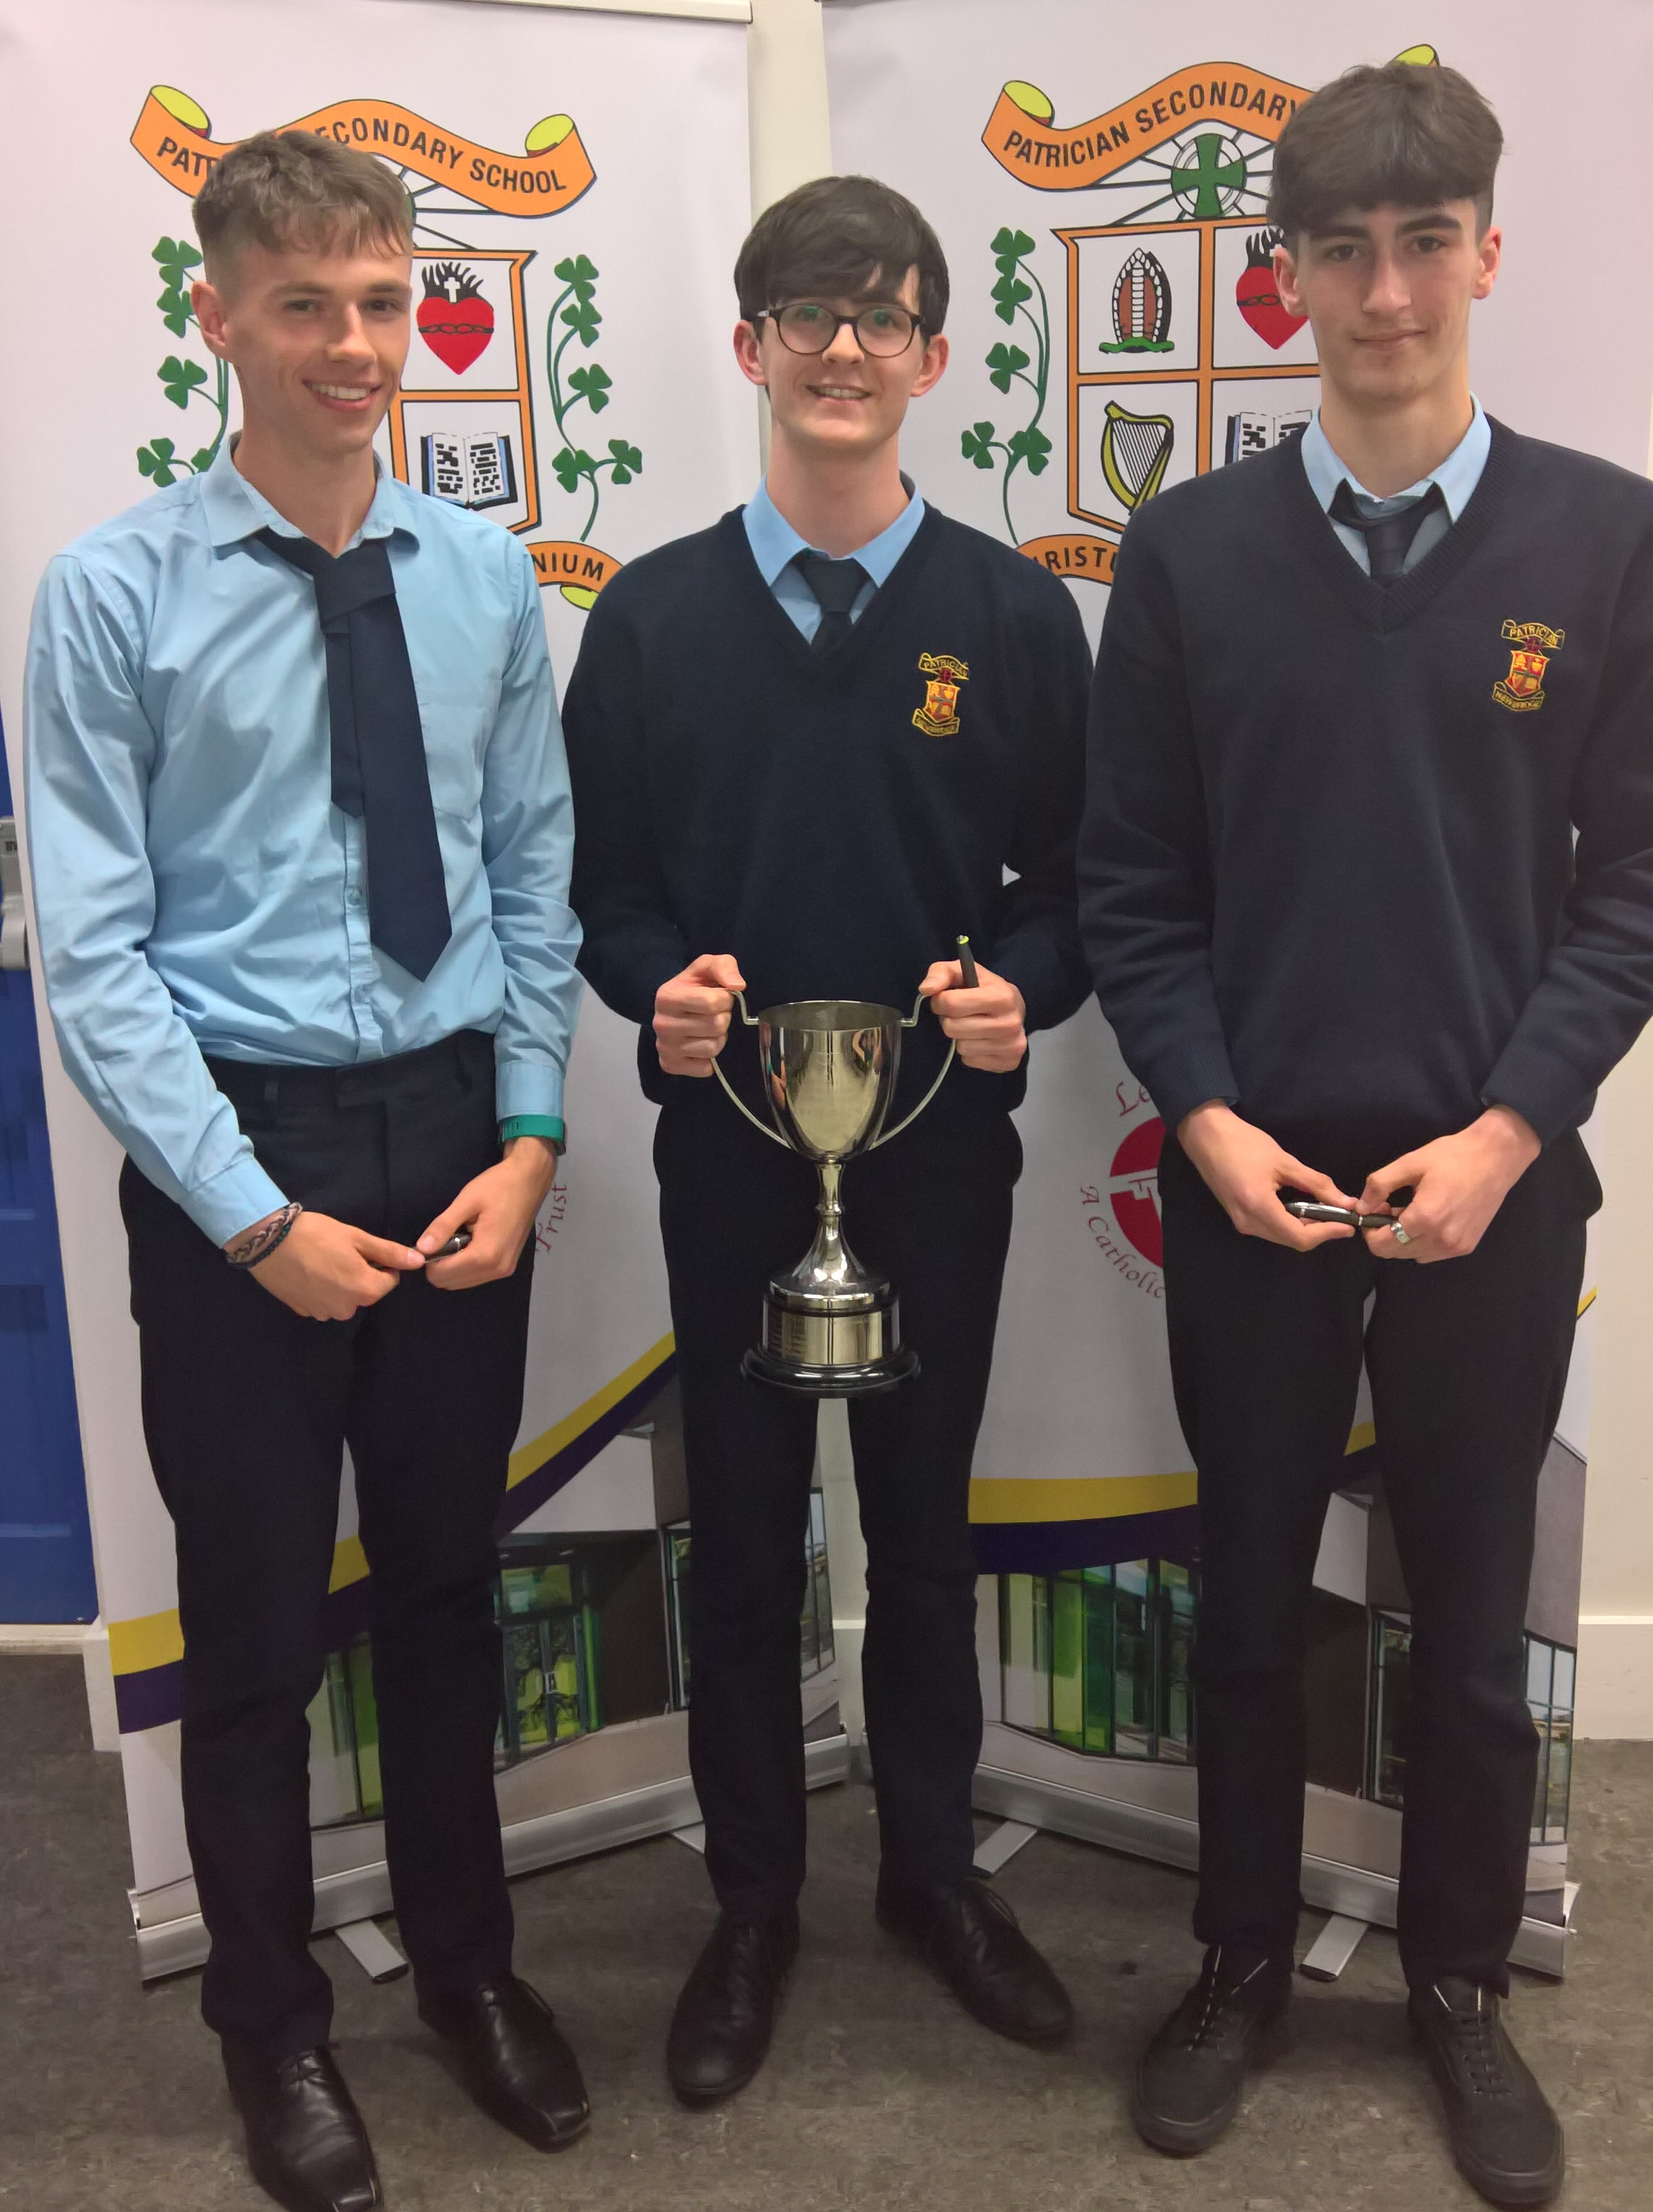 Senior Maths team who finished Midlands winners and All-Ireland runners-up (Mark Glynn, Colin Smyth & Sammy Haddaj) missing from photo is Ed Bennett